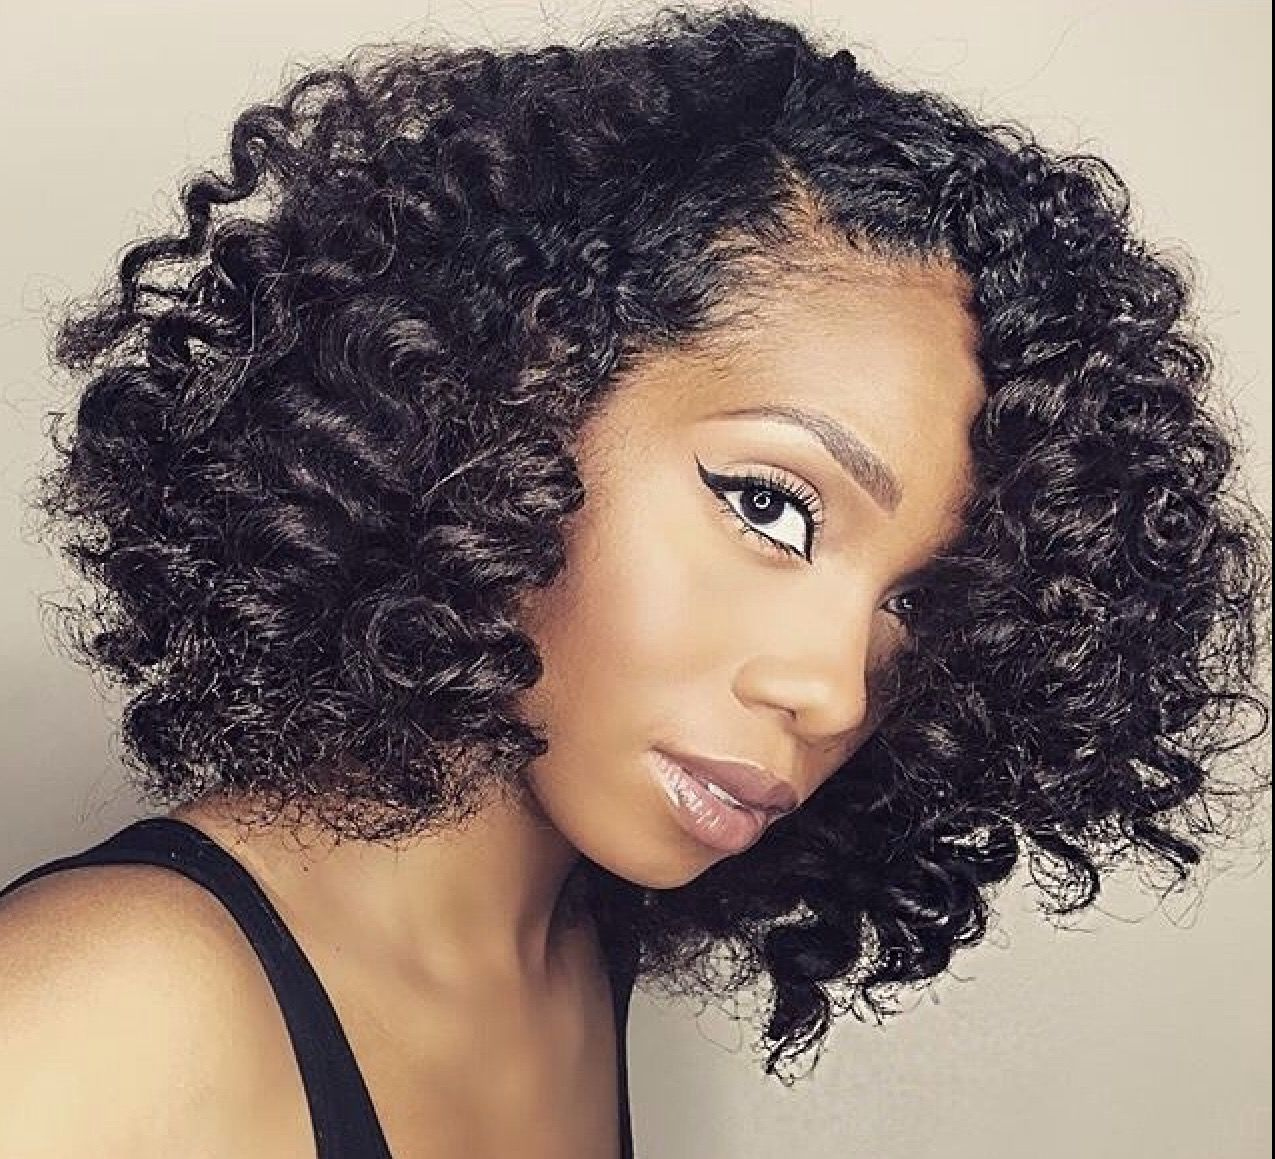 Transitioning Hairstyles Pinshelby Parker Helgerson On Beautiful And Natural Hair Styles